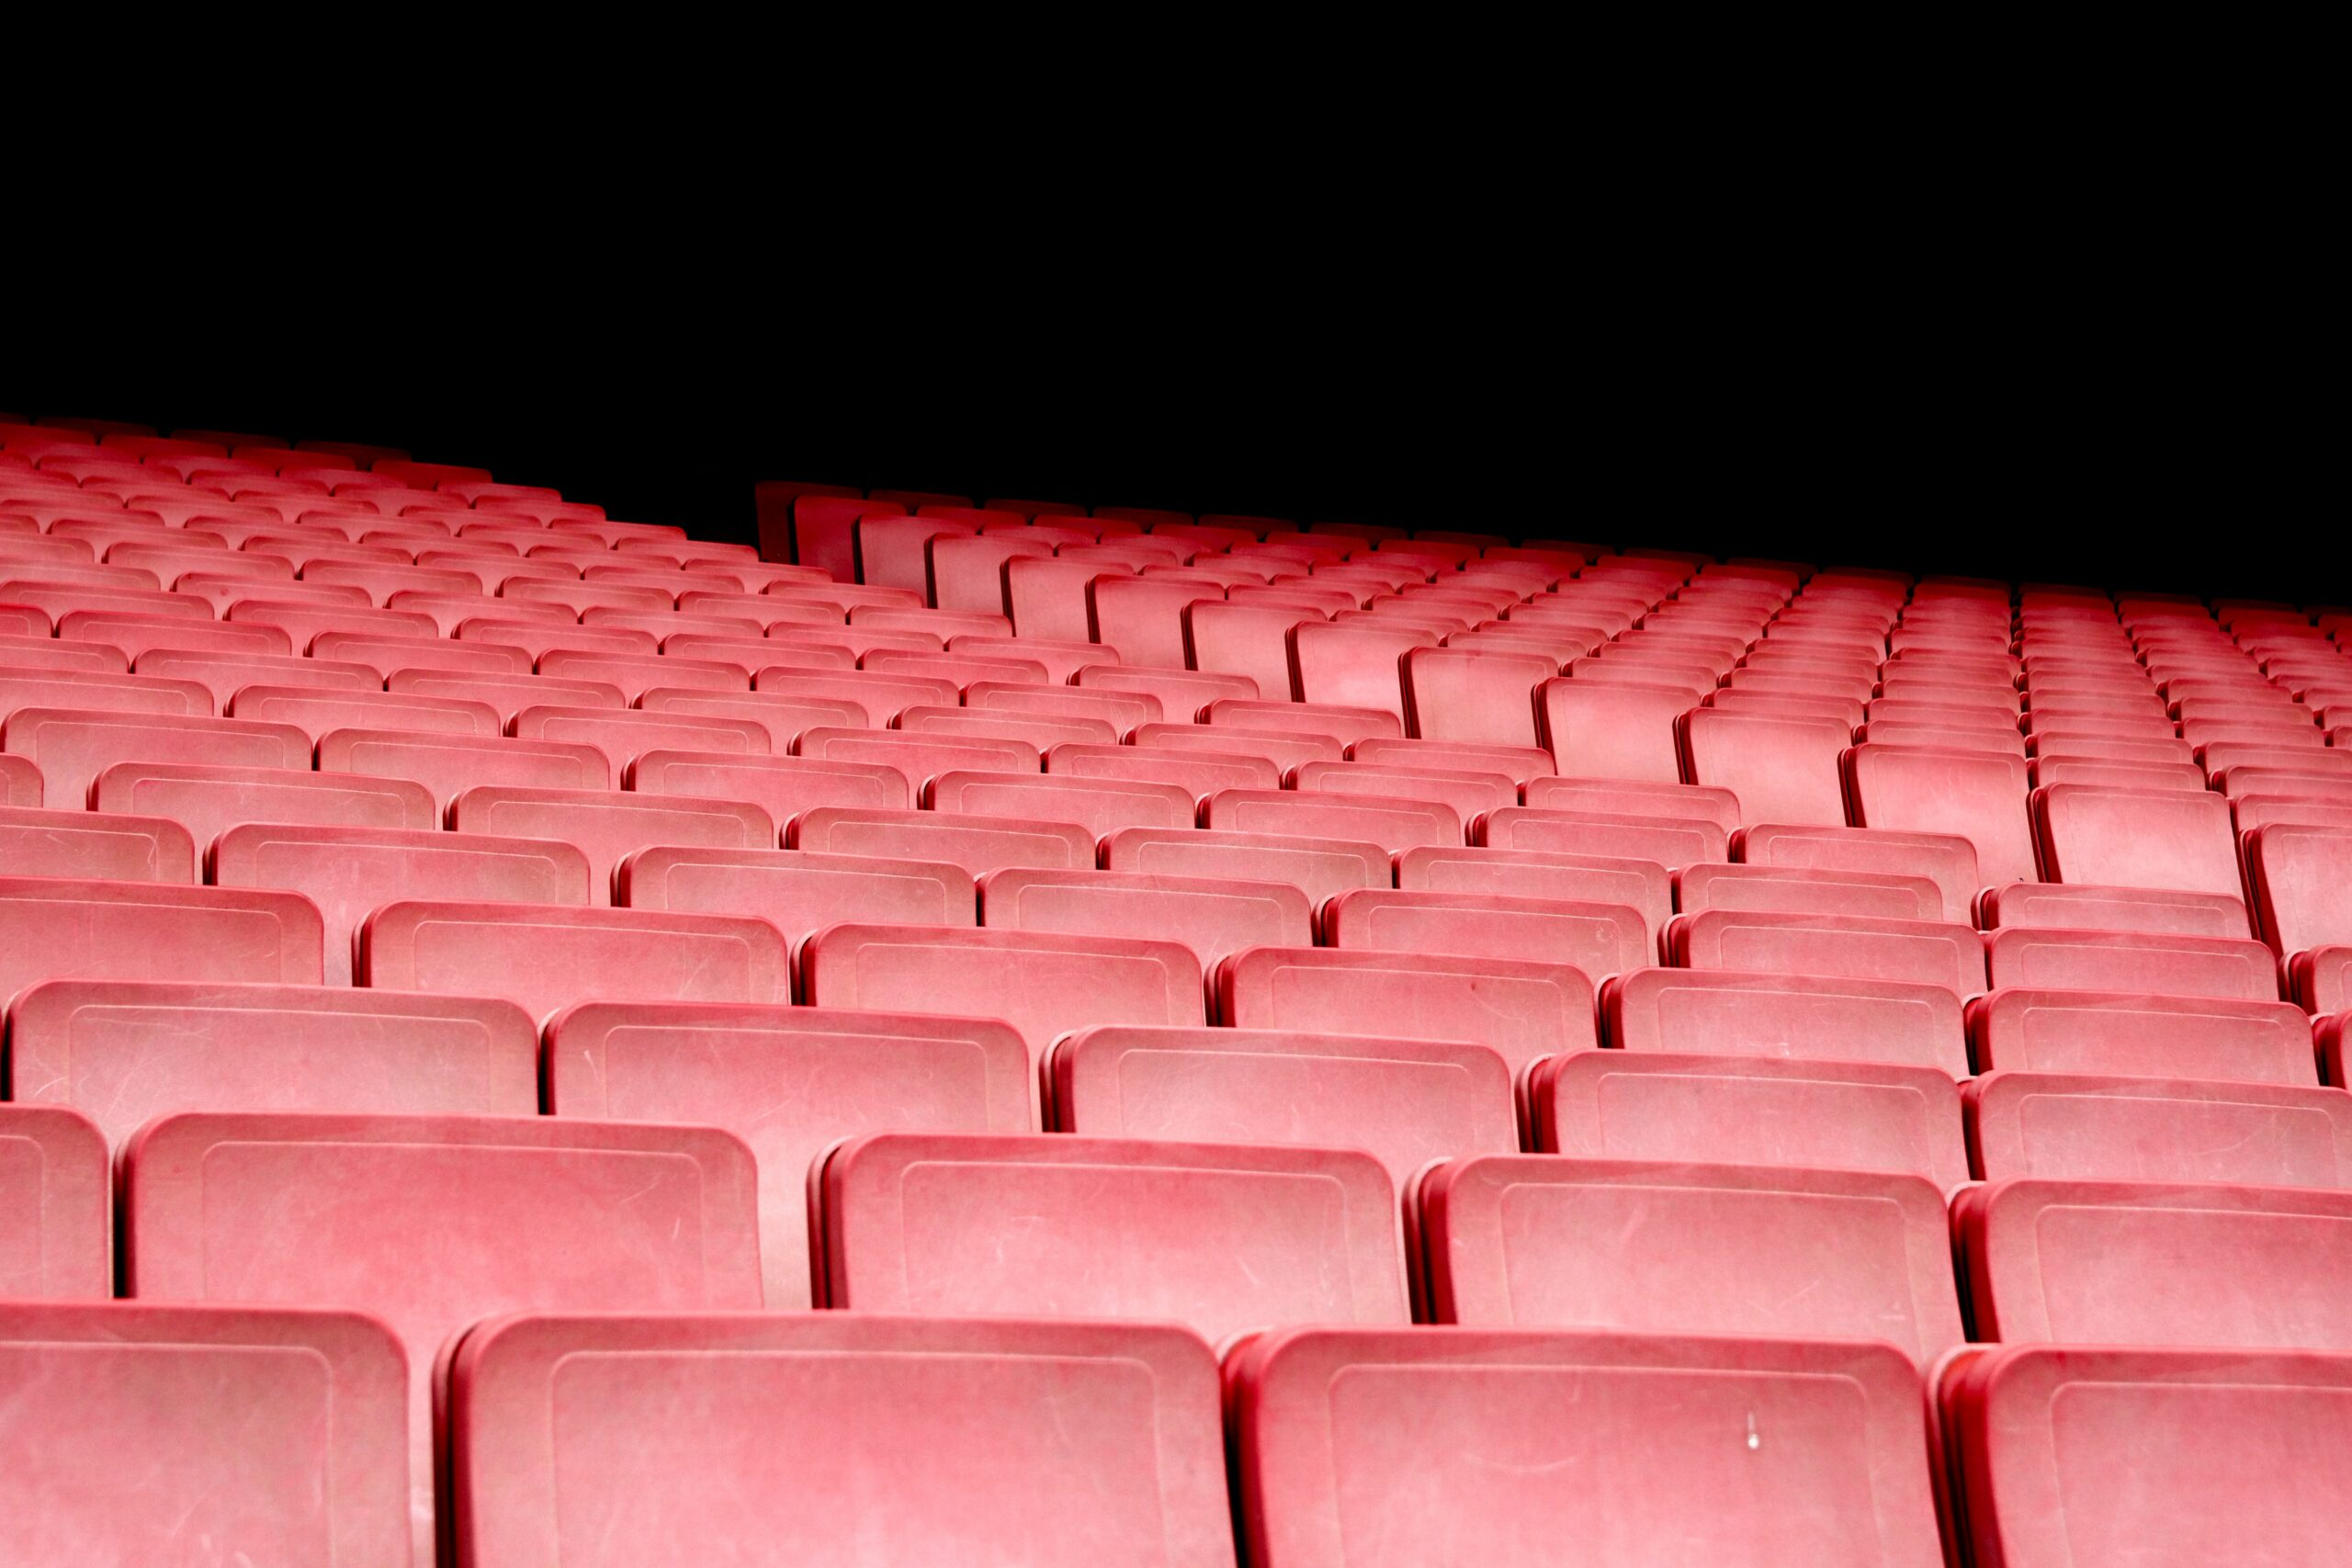 Resiliency for Cinemas to Rebound and Thrive